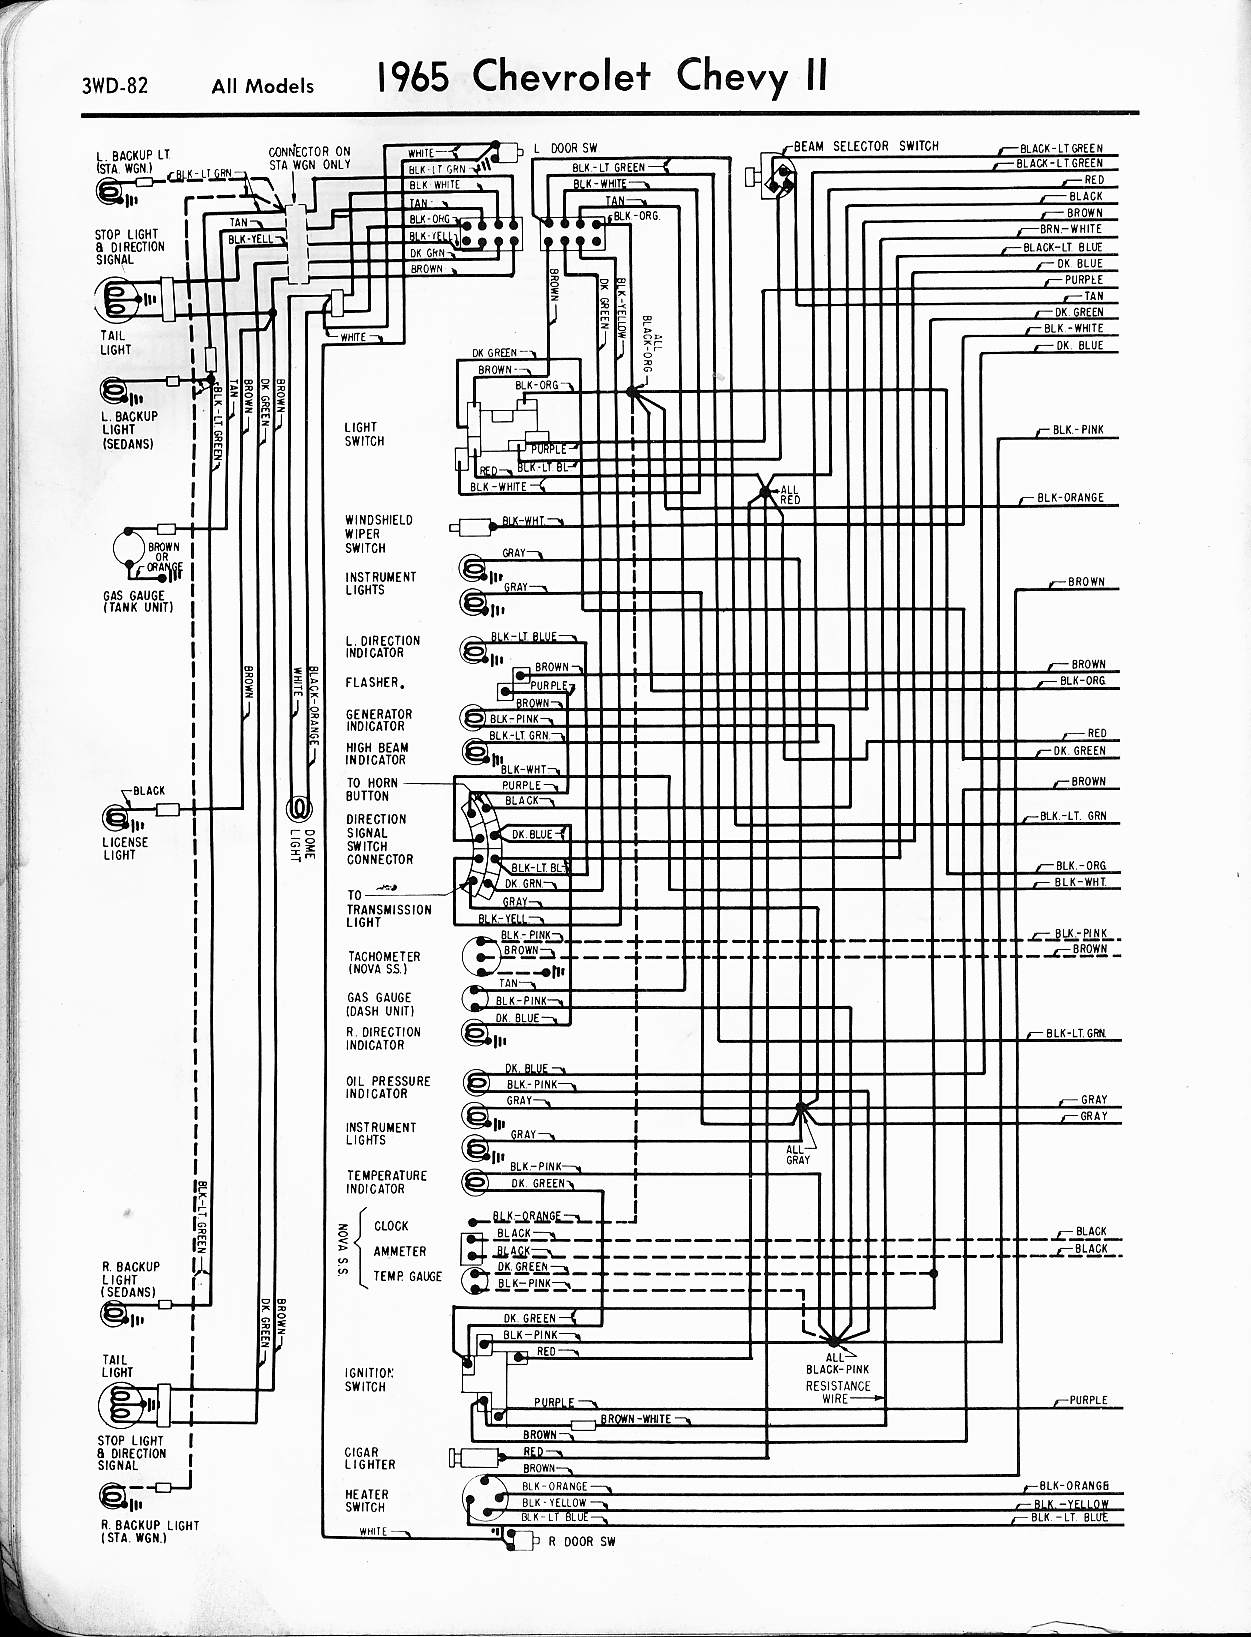 MWireChev65_3WD 082 chevy diagrams 1965 chevy ignition switch wiring diagram at edmiracle.co